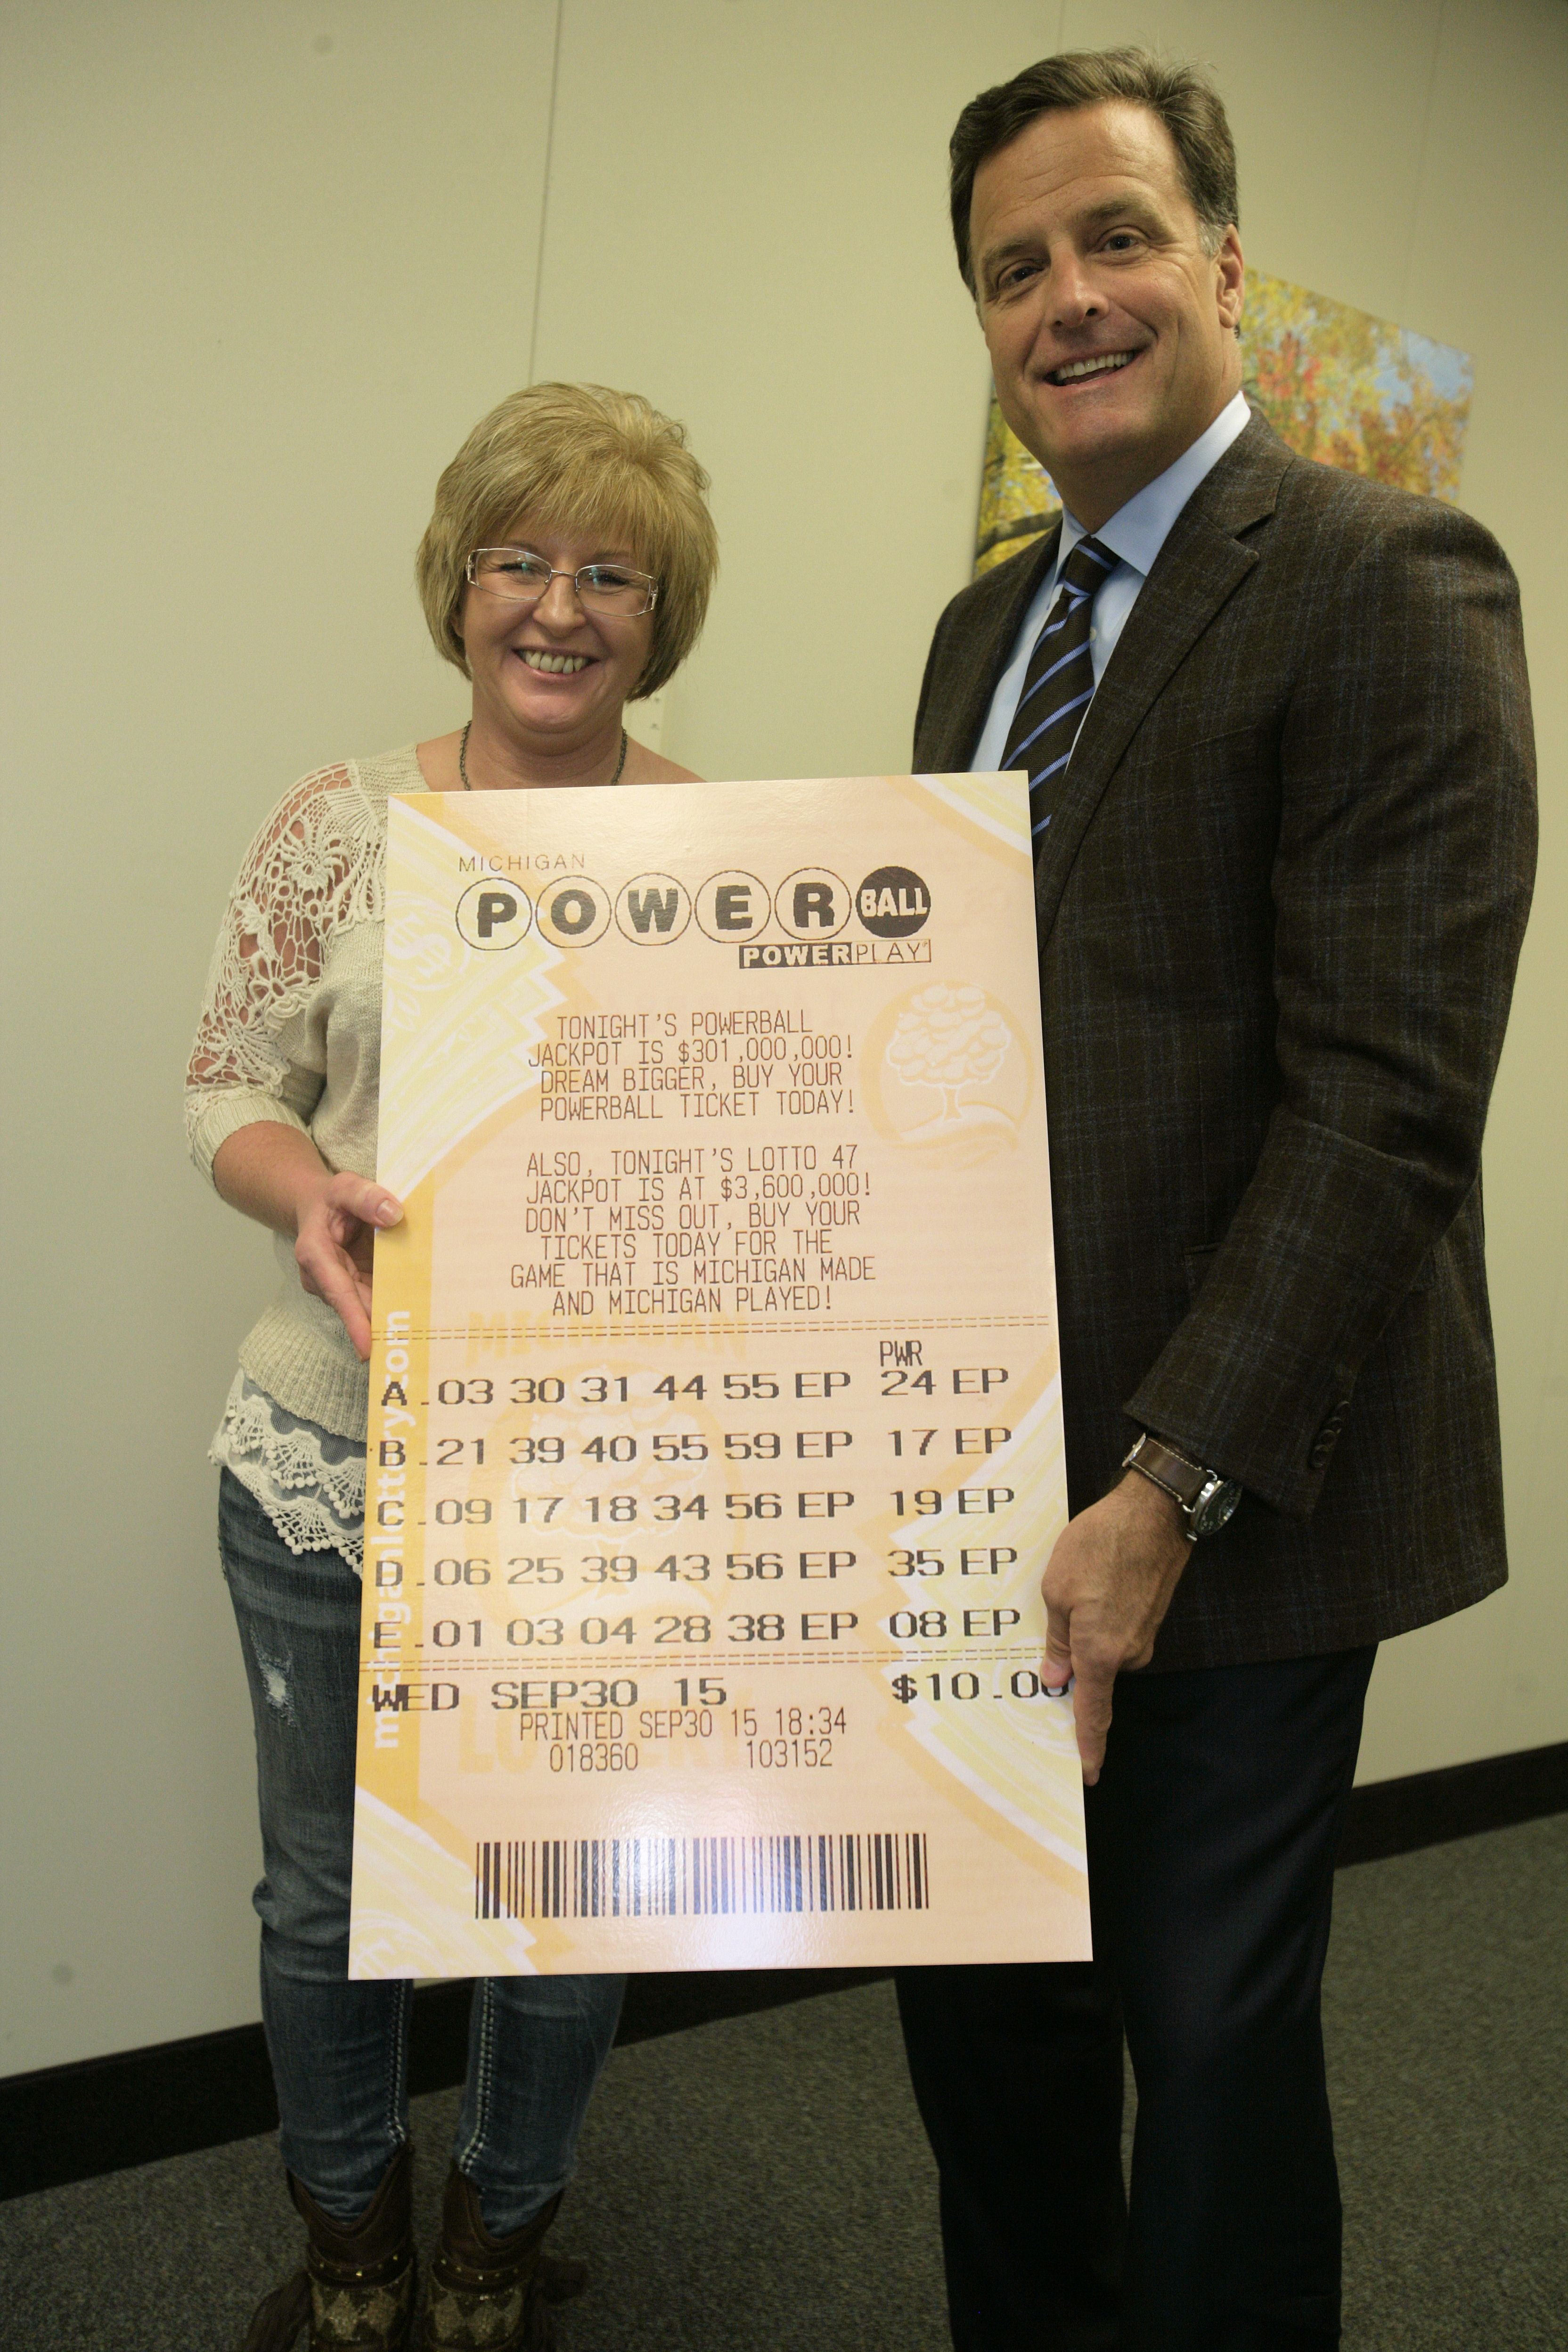 The powerball jackpot ticket of $344.6 million is sold: know more about the reward and winner